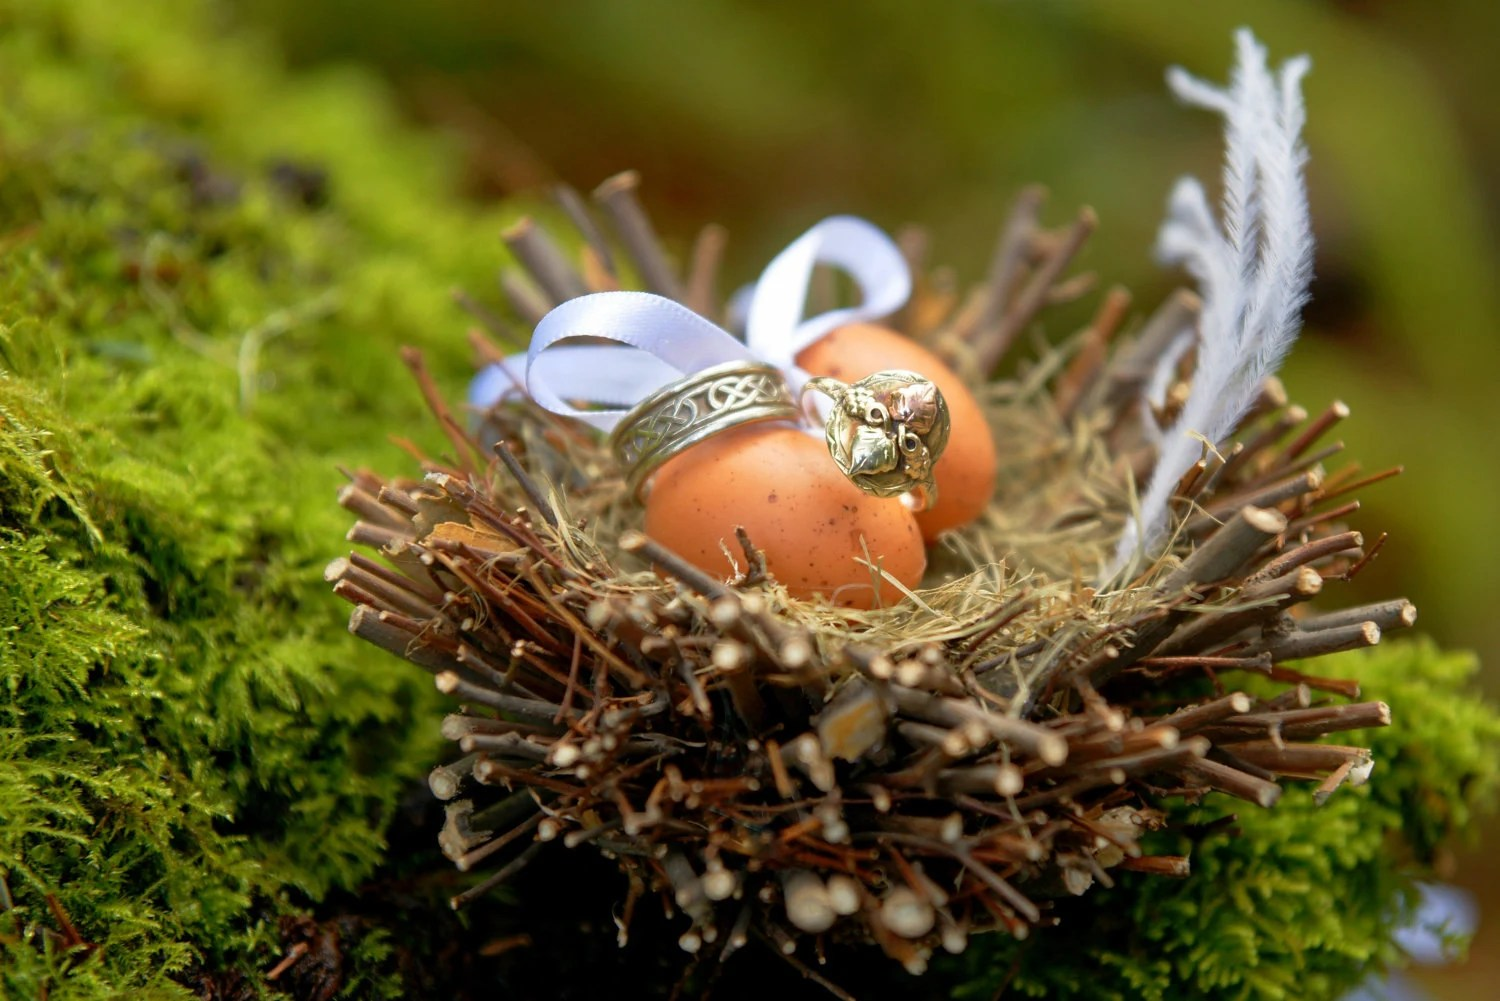 Ring Bearer Birds Nest With Tan Eggs